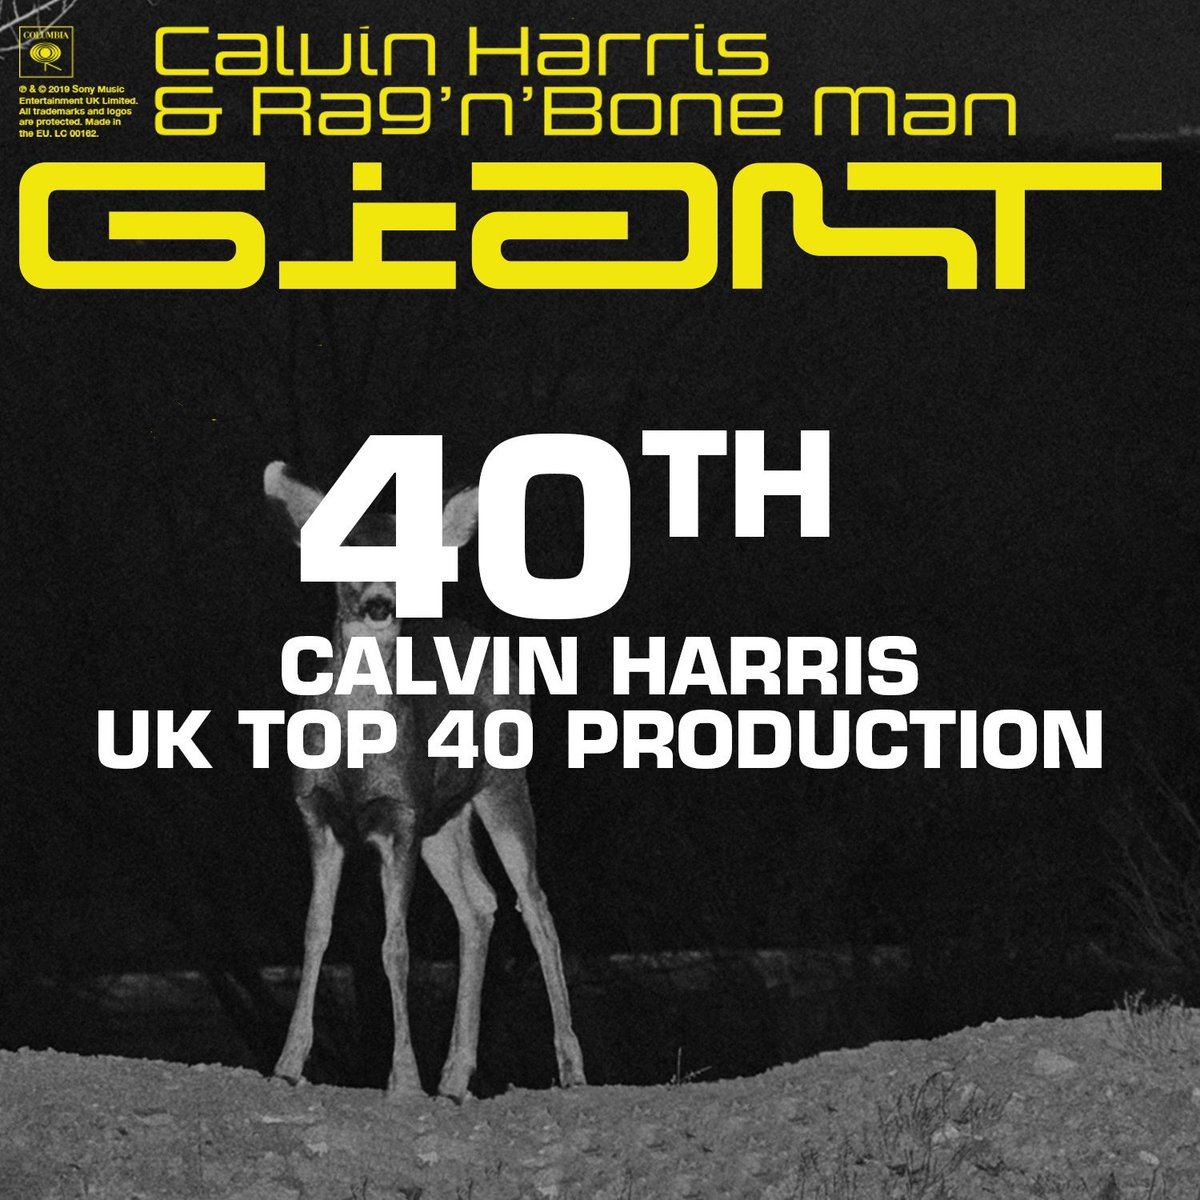 Giant is my 40th top 40 production! What a great birthday present 😁Thank you!!! https://t.co/CIAeVlGgN2